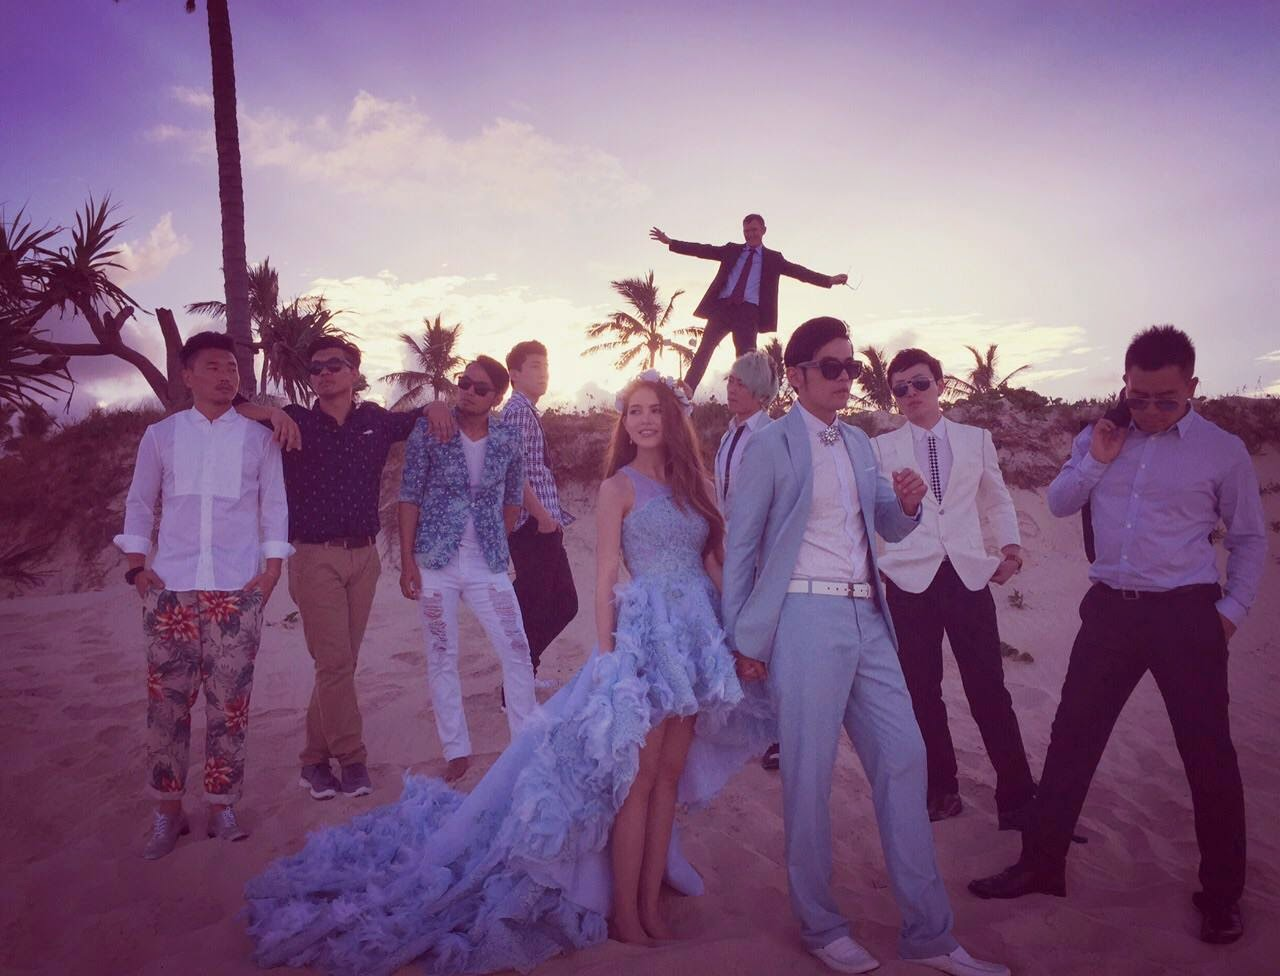 Jay Chou and wife held another wedding in Australia